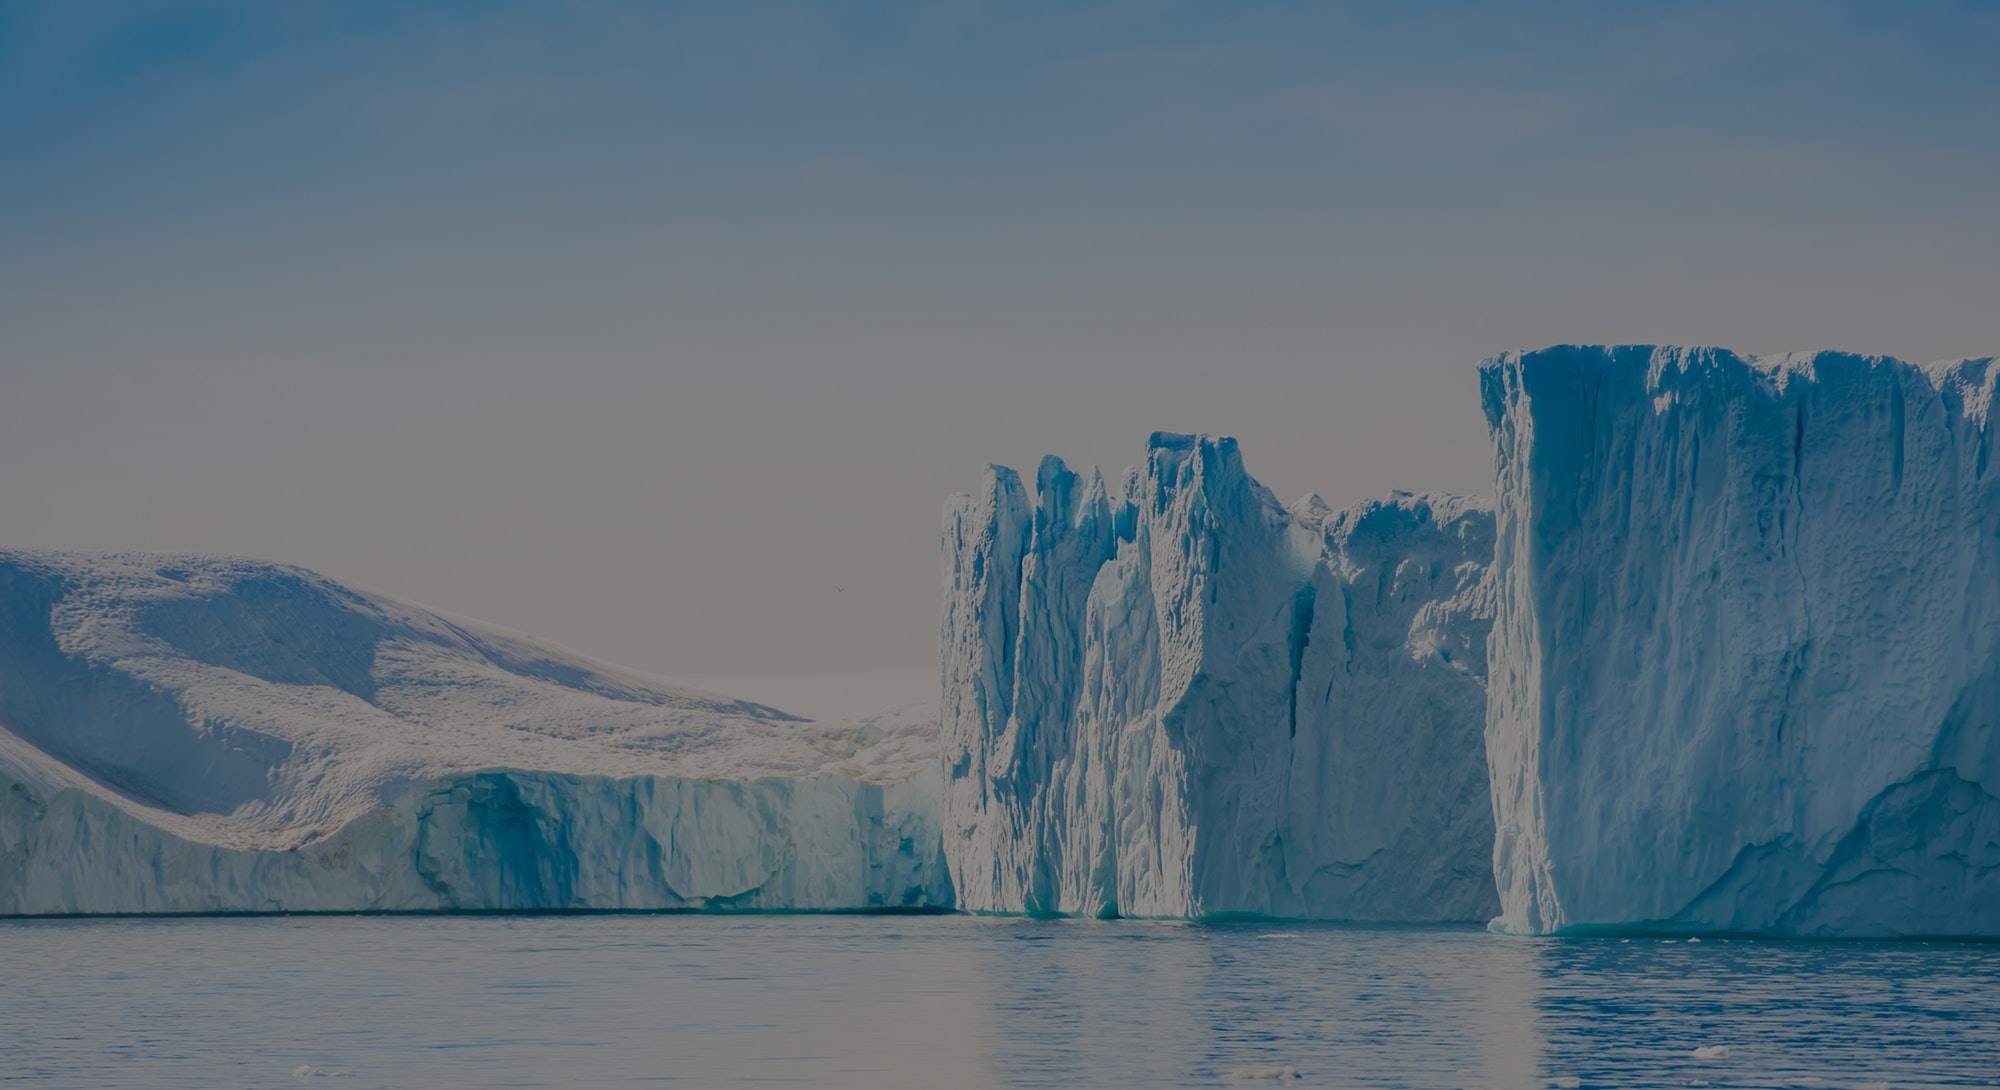 Big blue icebergs in Ilulissat icefjord, western Greenland